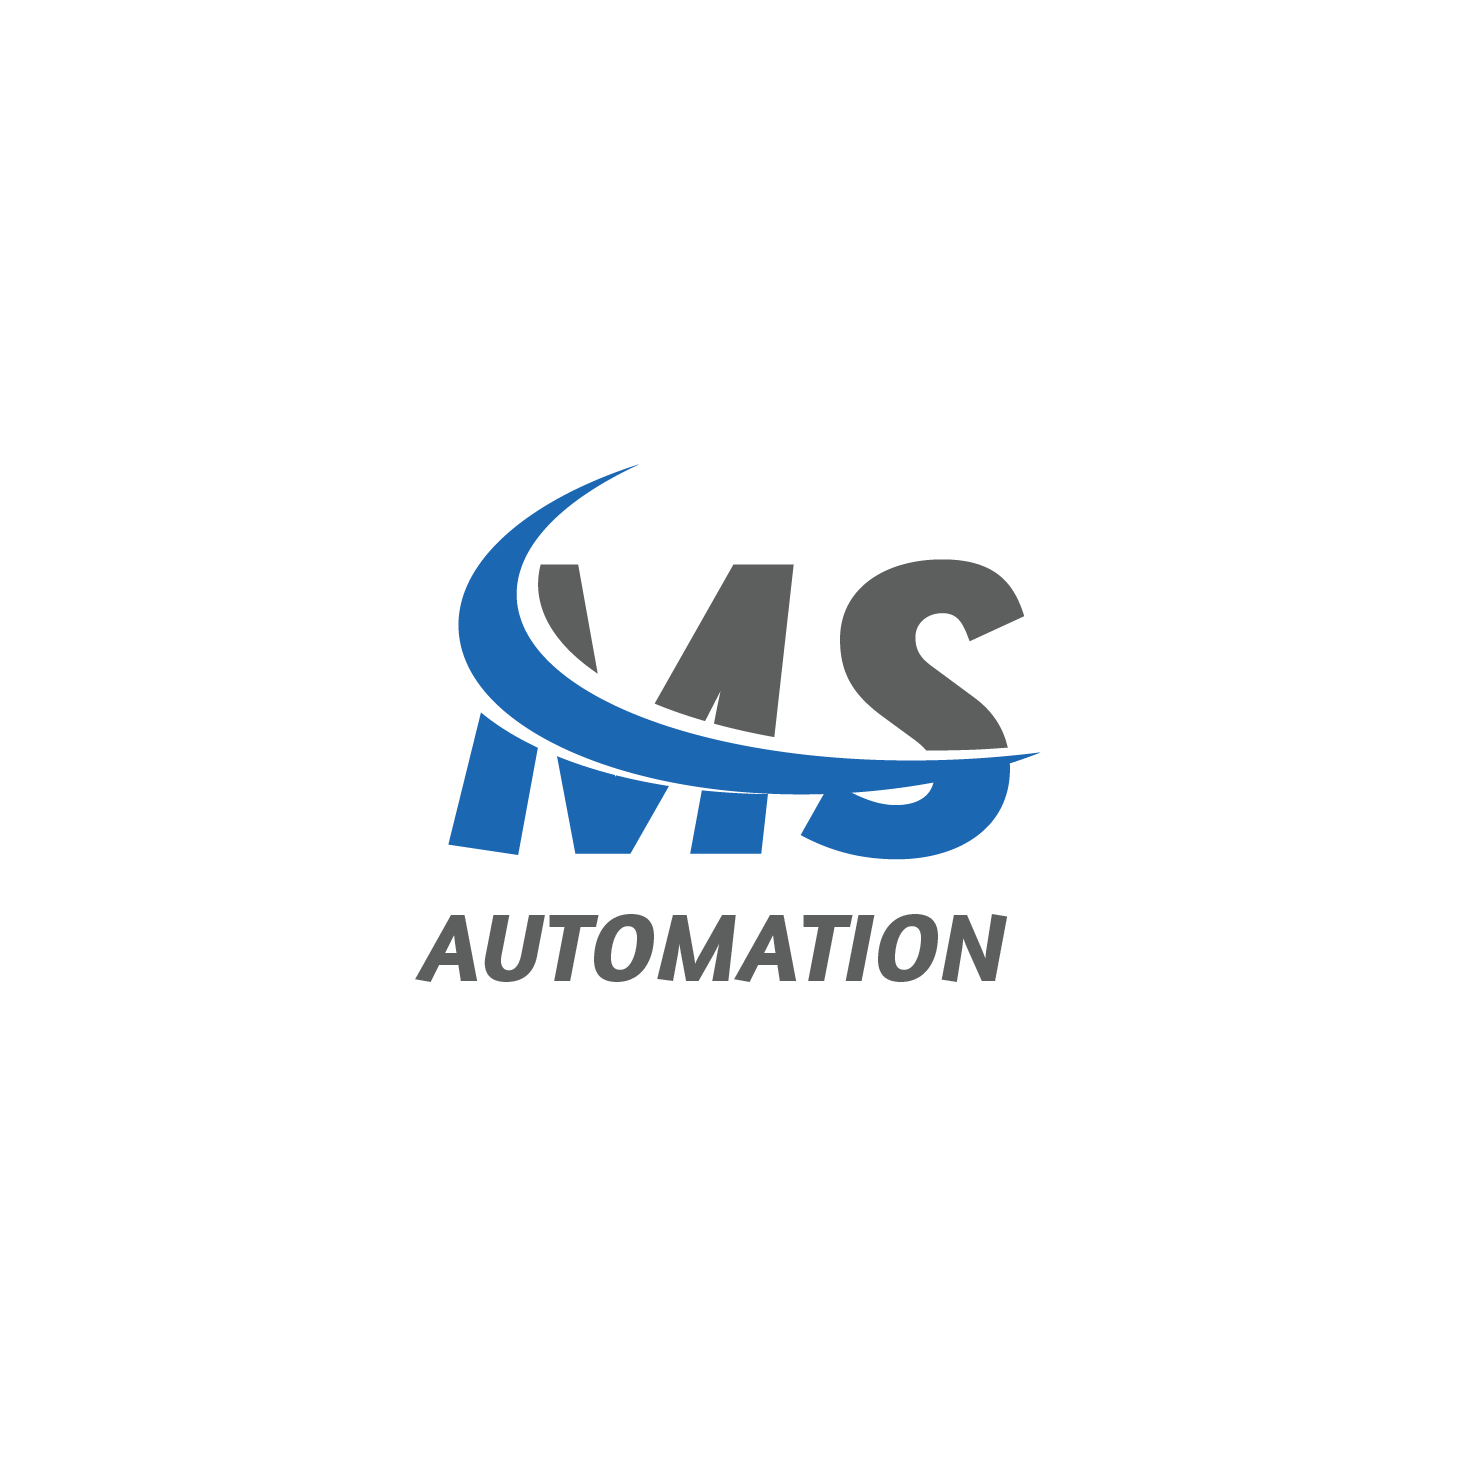 masculine modern it company logo design for ms automation by